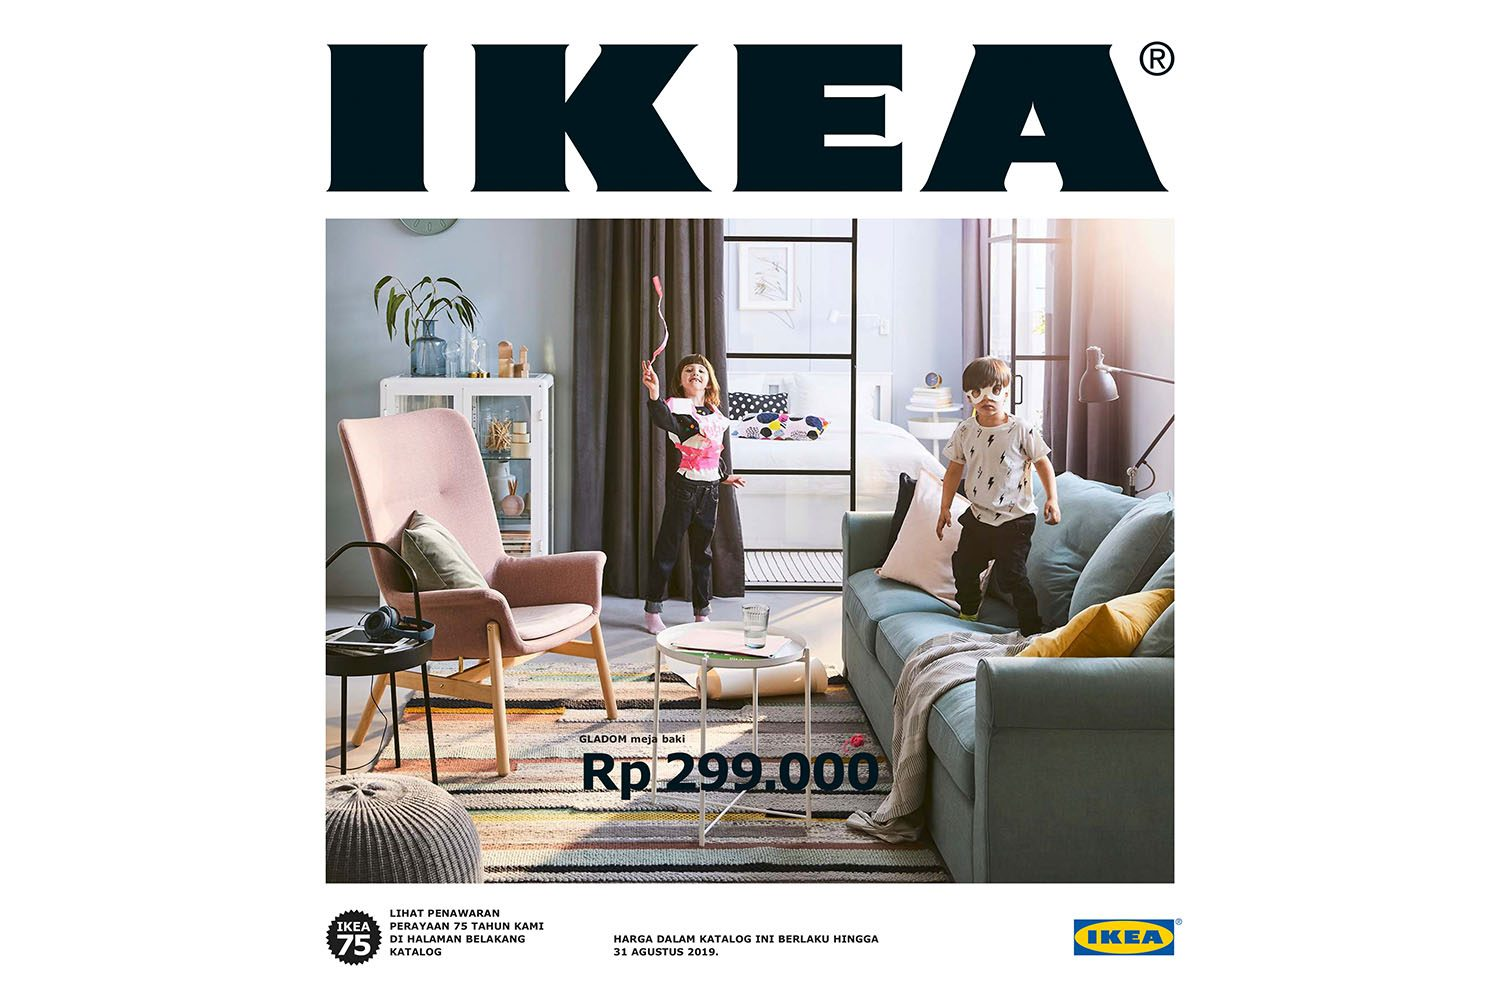 Nhbl Ikea Indonesia Launches Their Earthy And Pastel Dominated